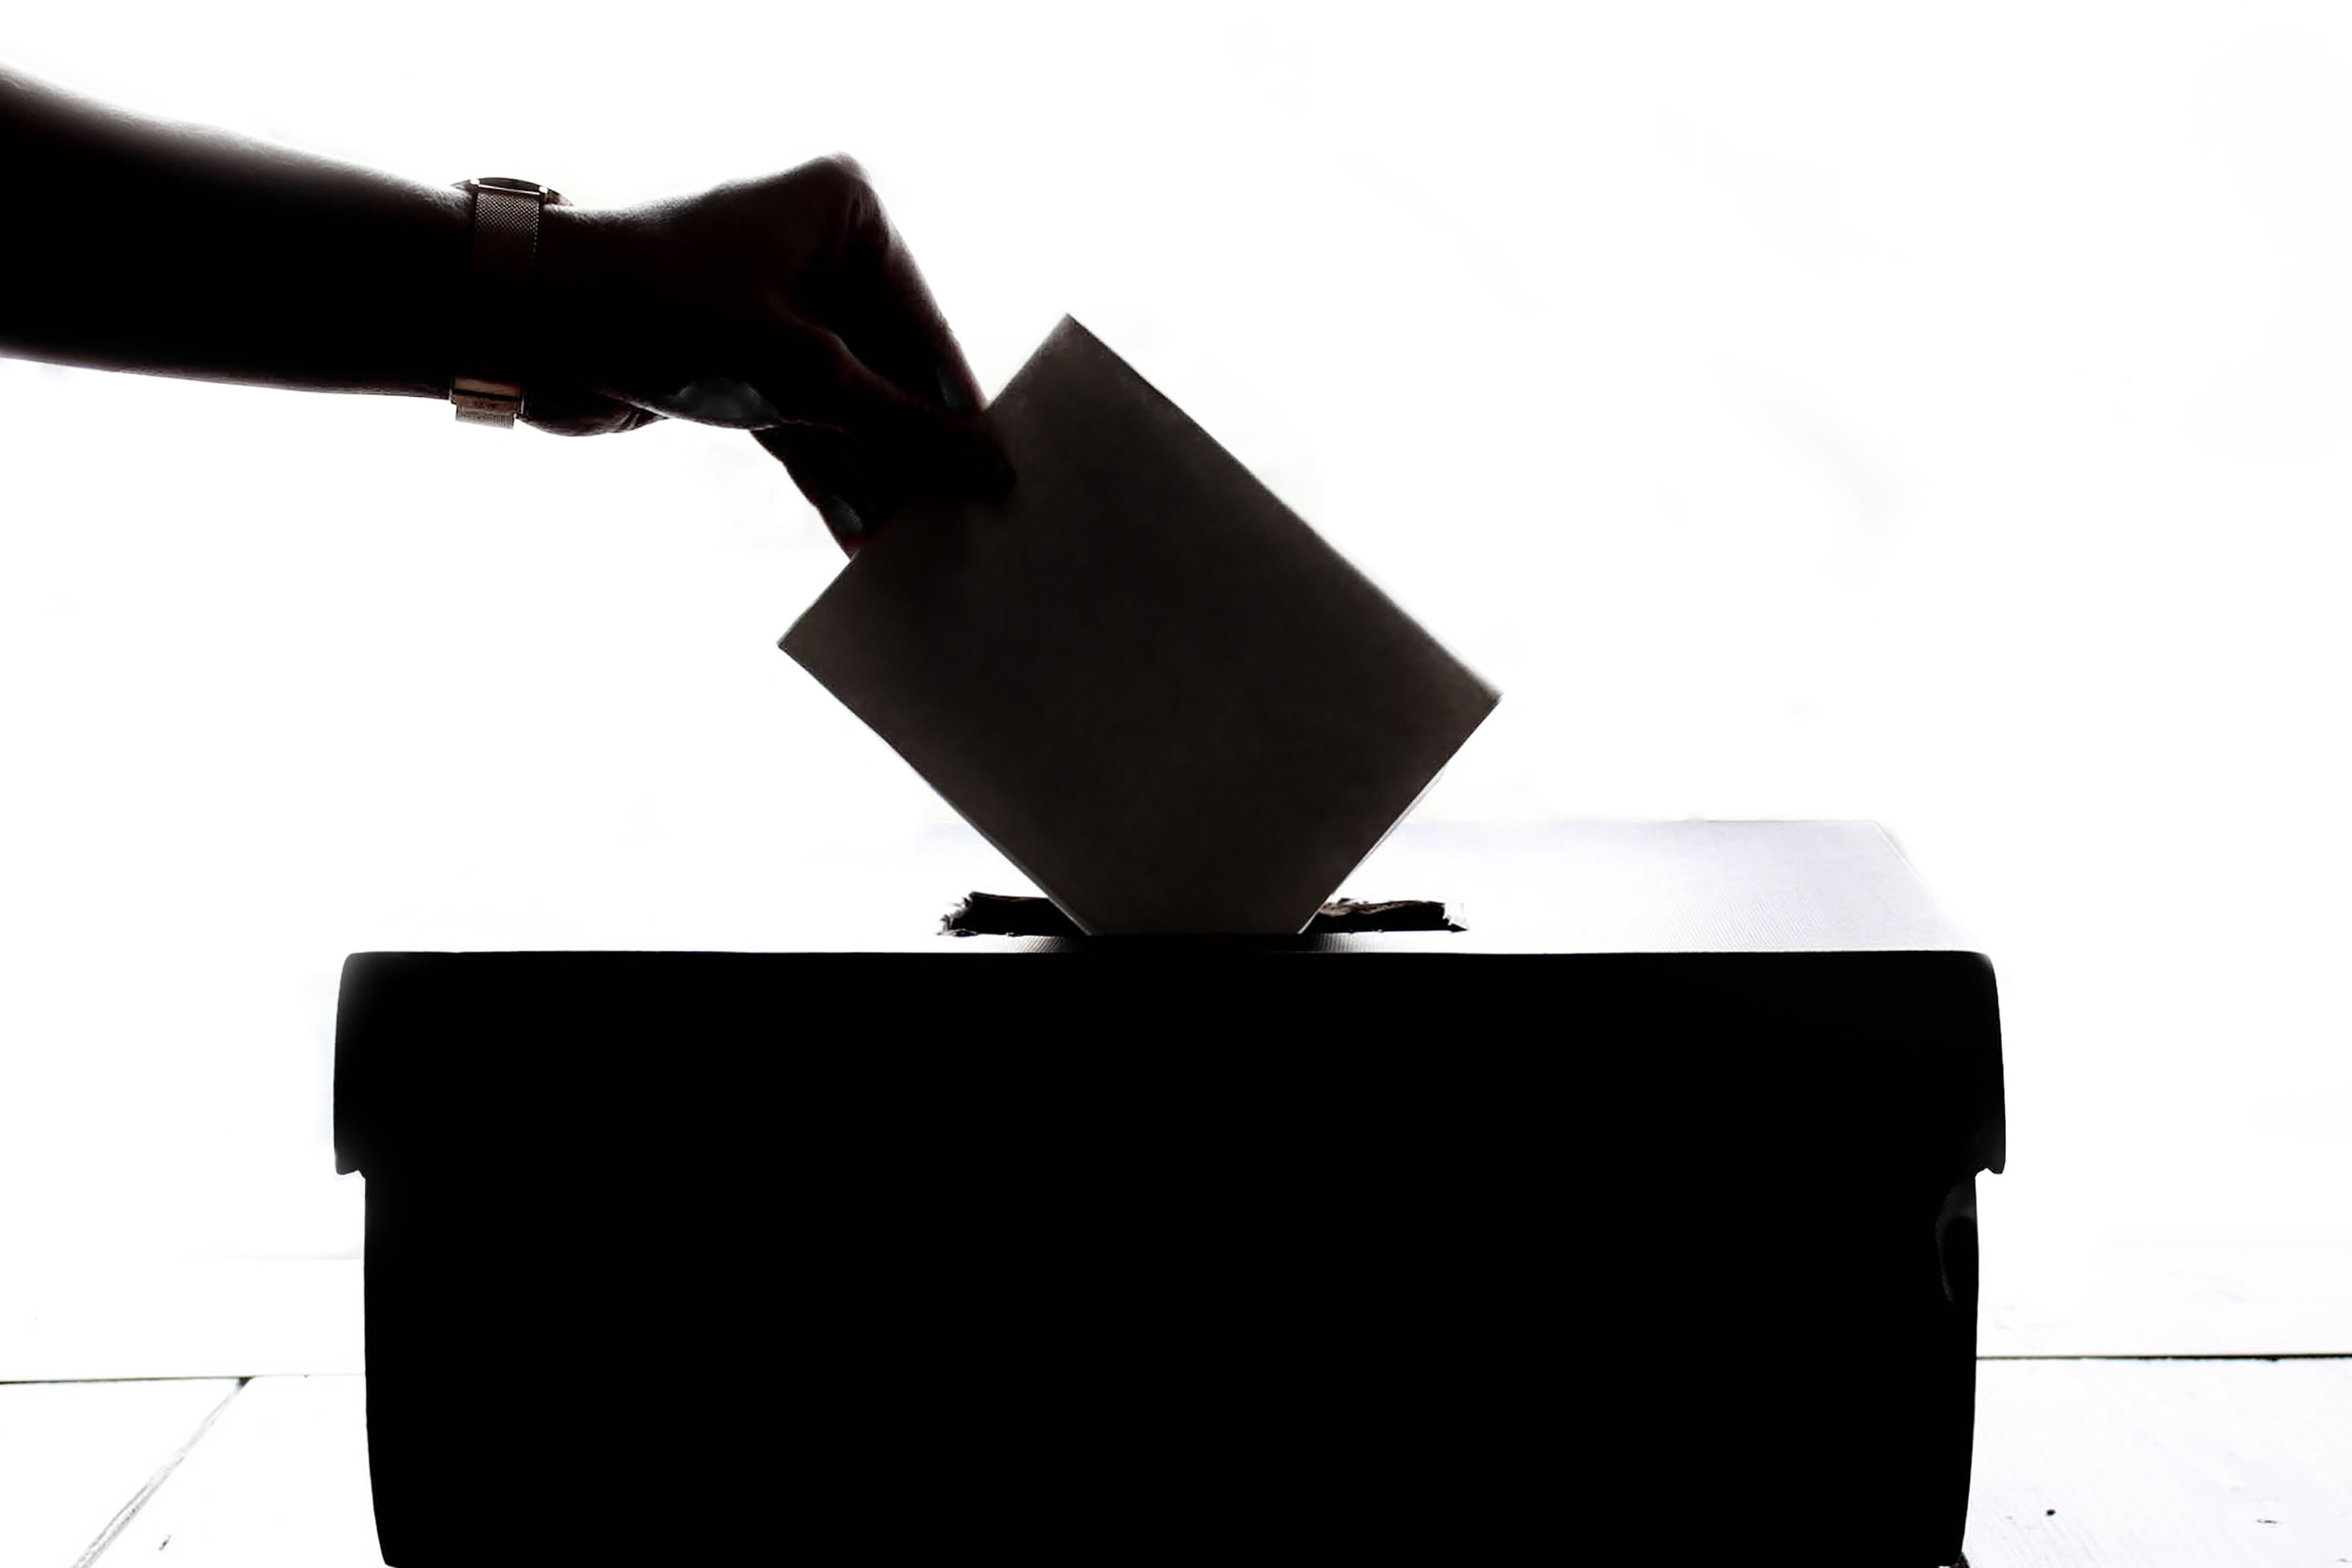 Voting is for those who wish to be heard…and not just herded. - Vote!